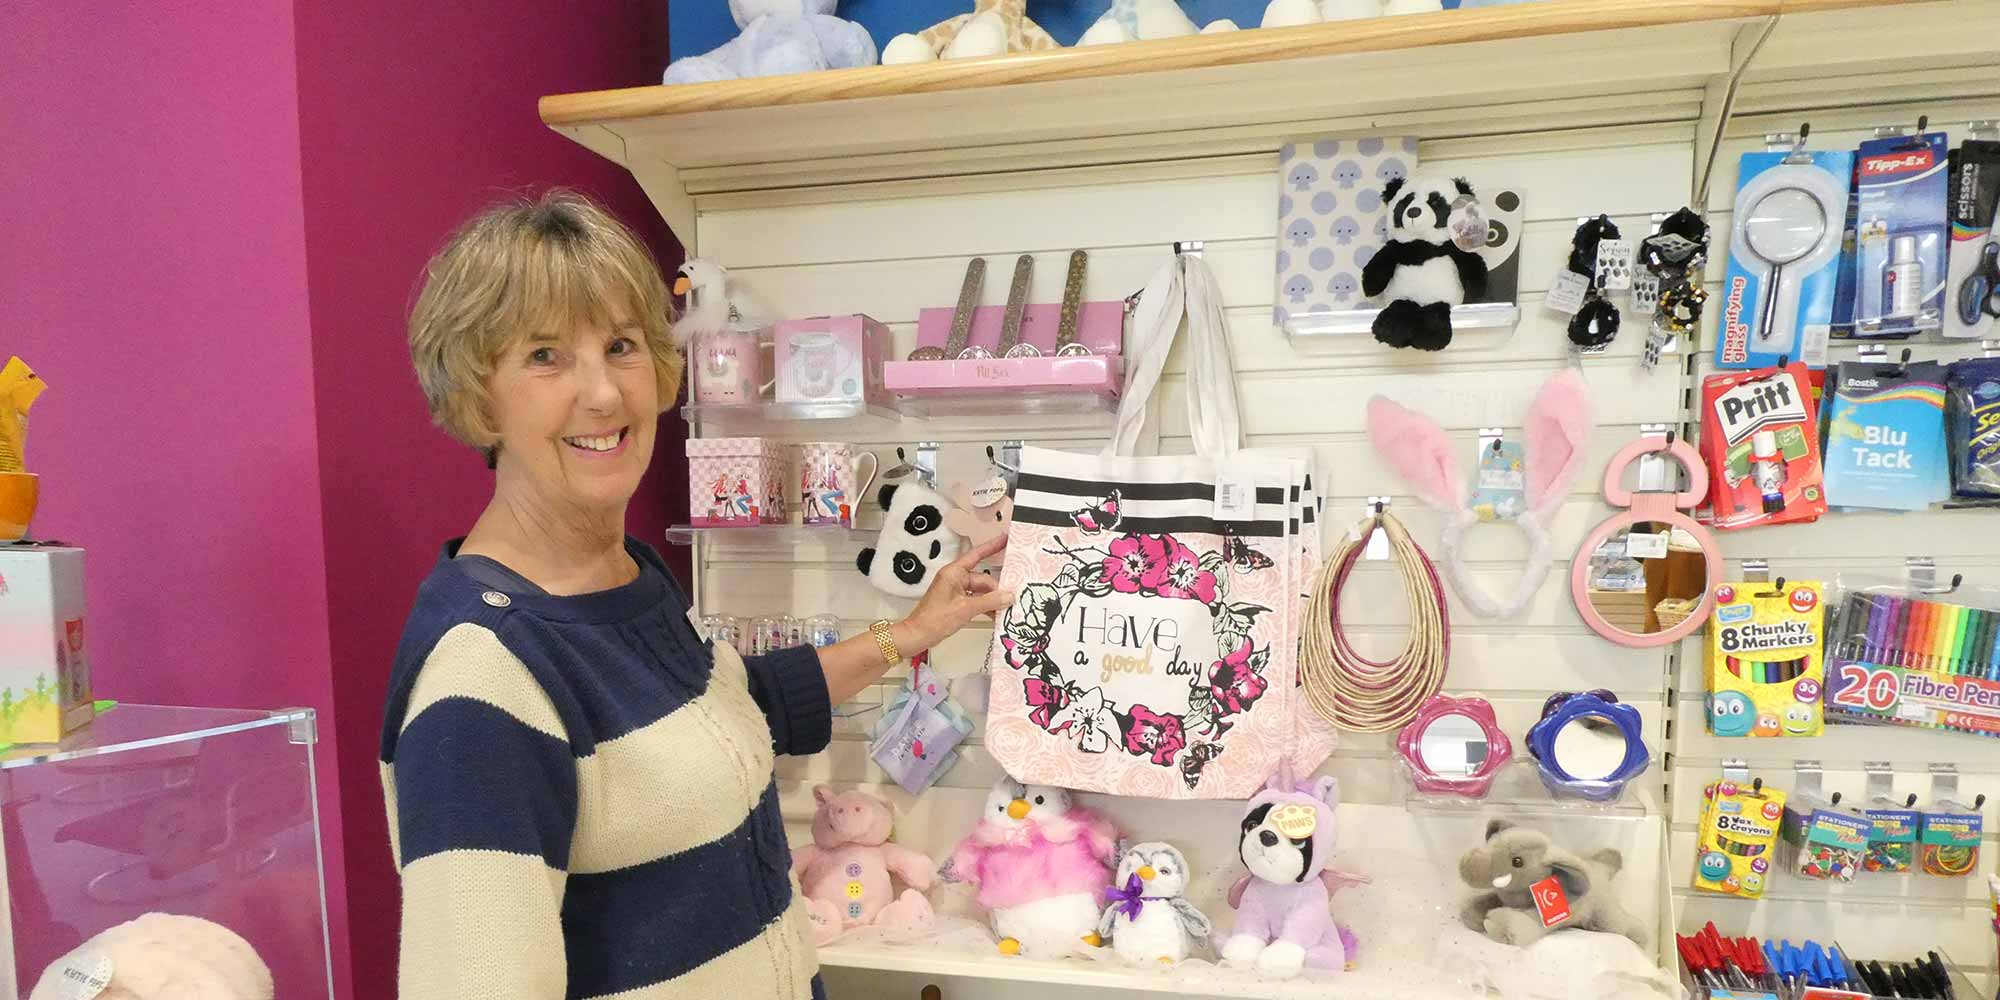 Friends of Chichester Hospitals shop at St Richards